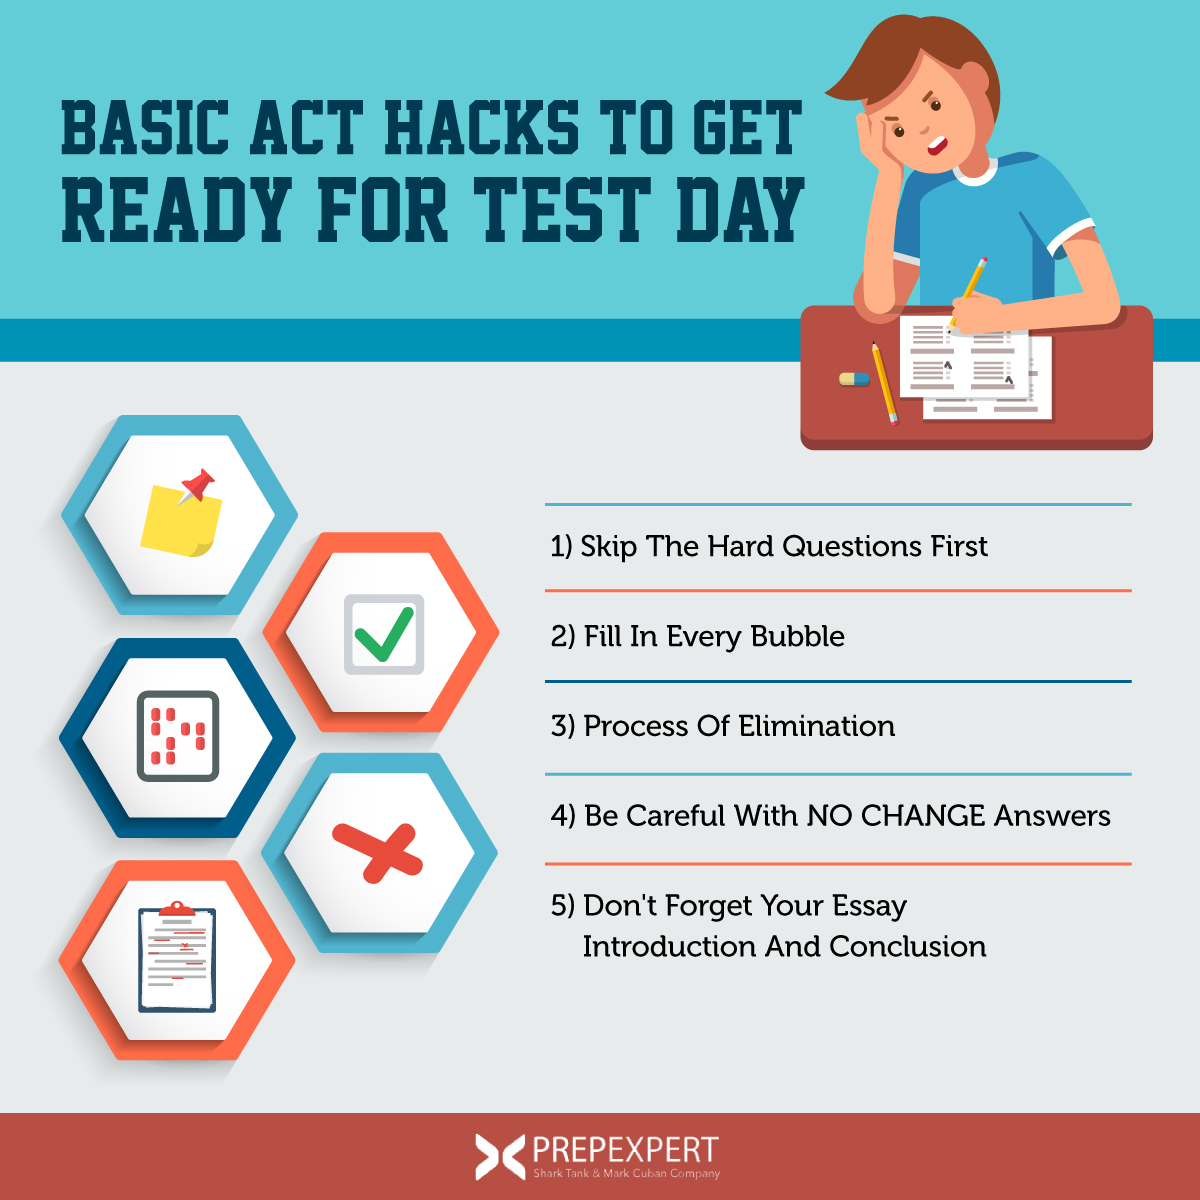 Basic Act Hacks To Get Ready For Test Day